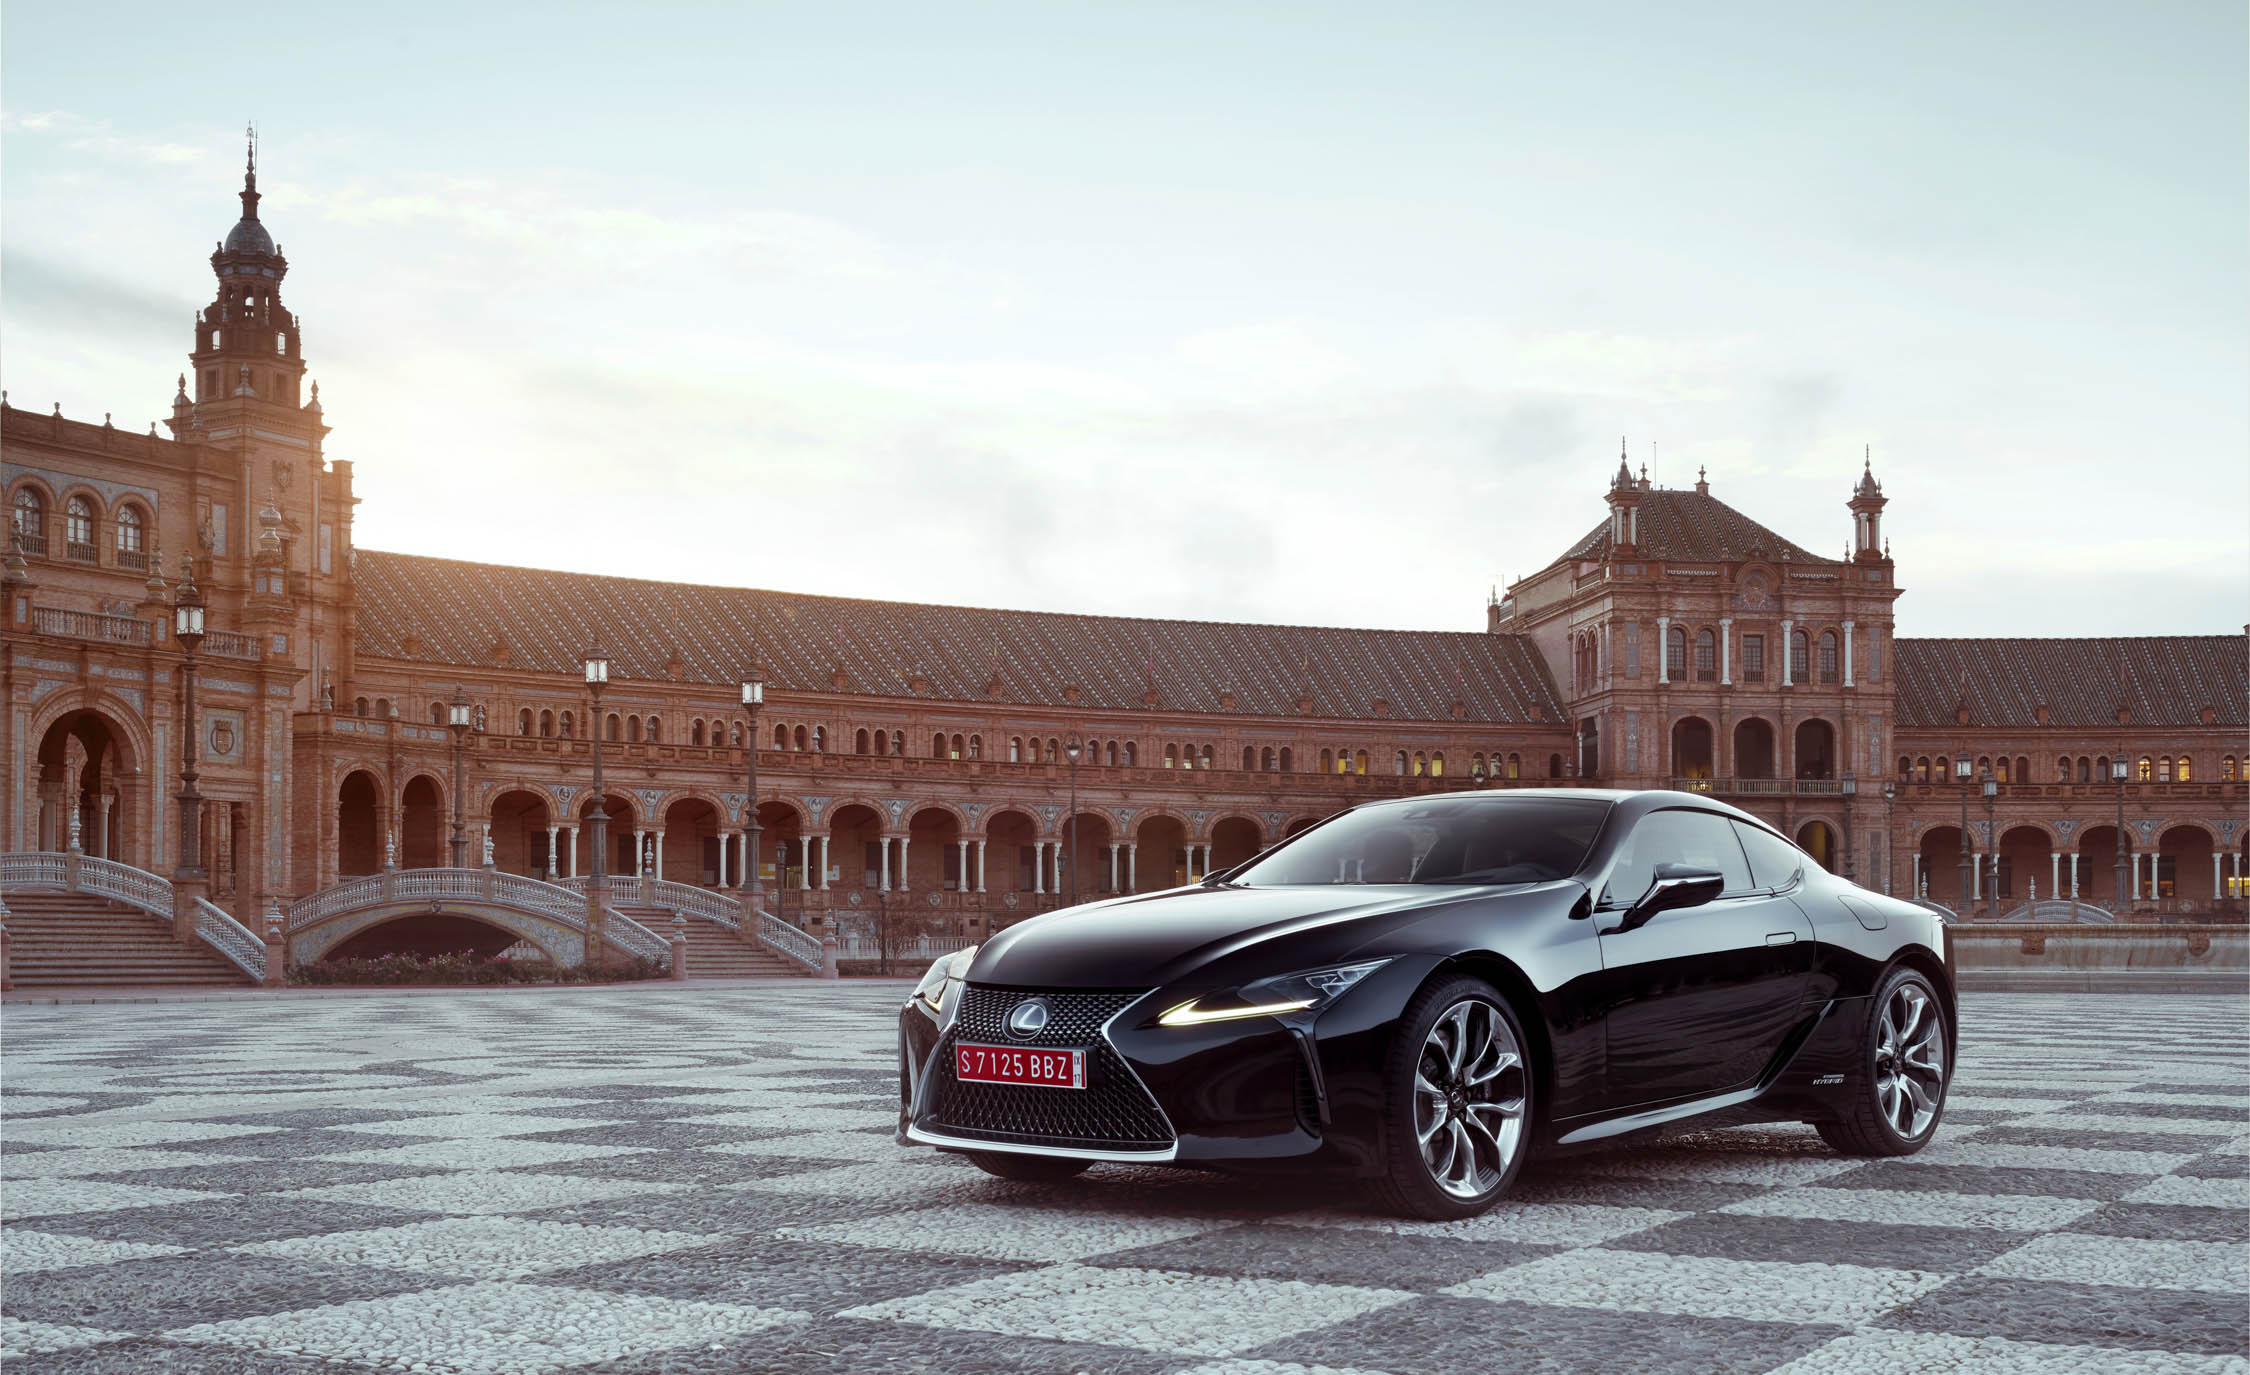 2018 Lexus Lc 500h Black Exterior Front And Side (Photo 54 of 84)